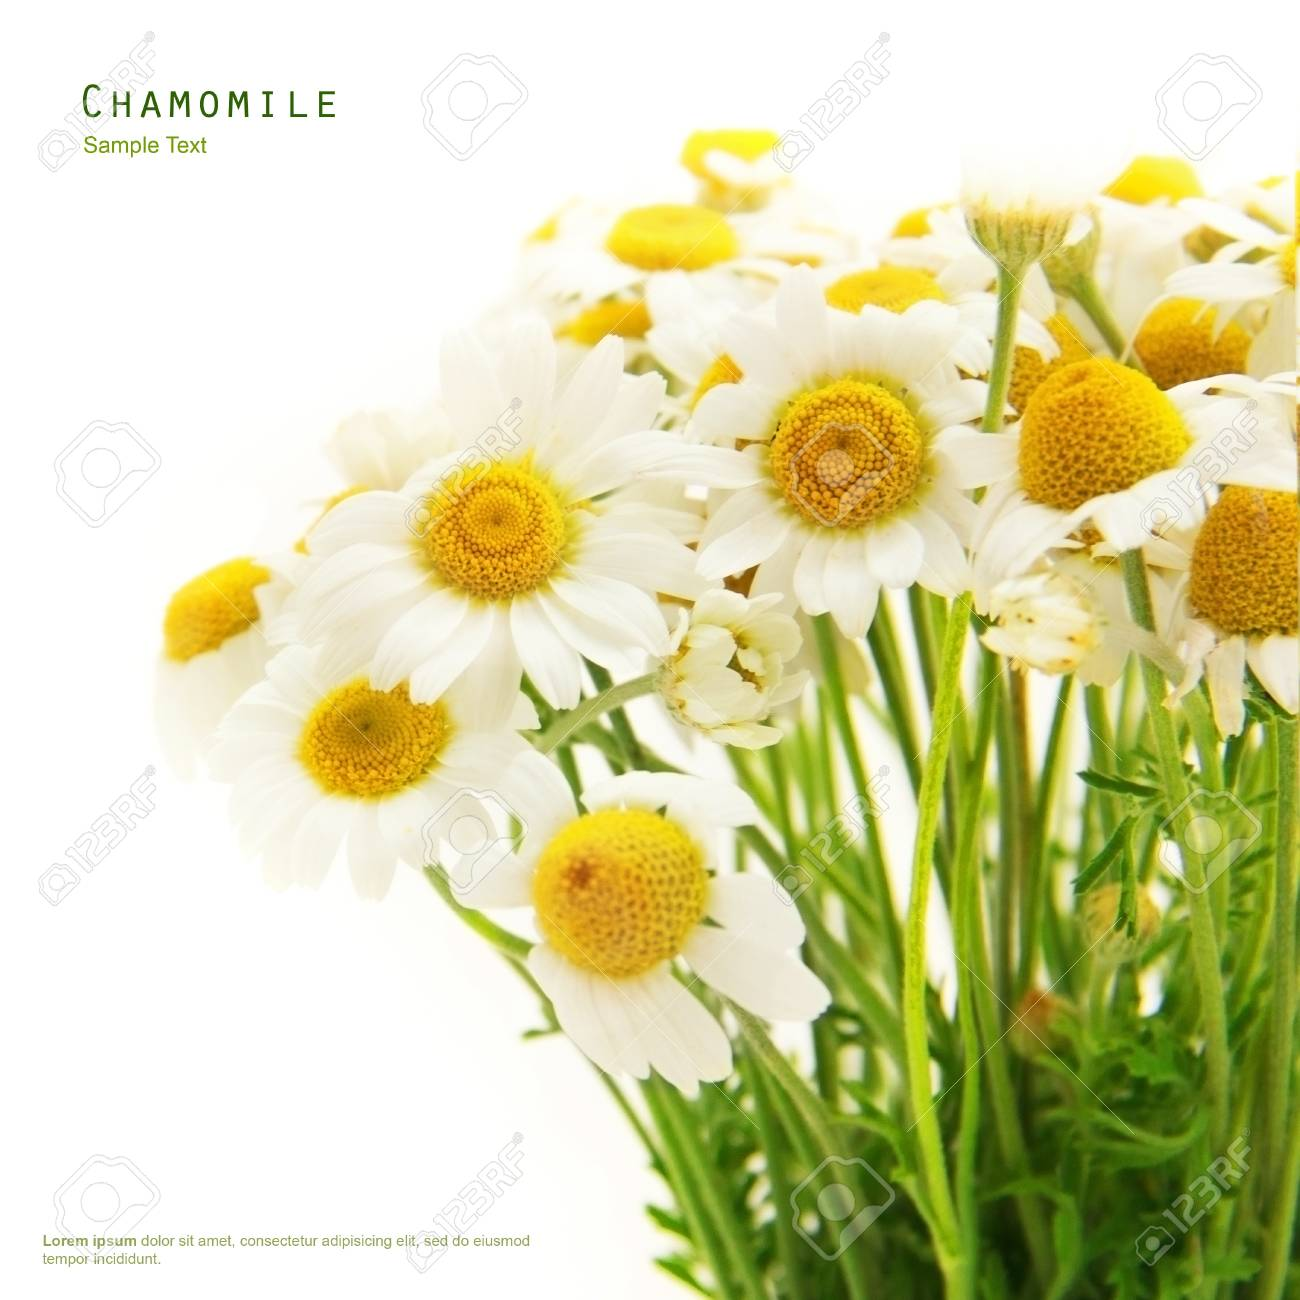 Chamomile flower bouquet herbal on a white background Stock Photo - 20270502